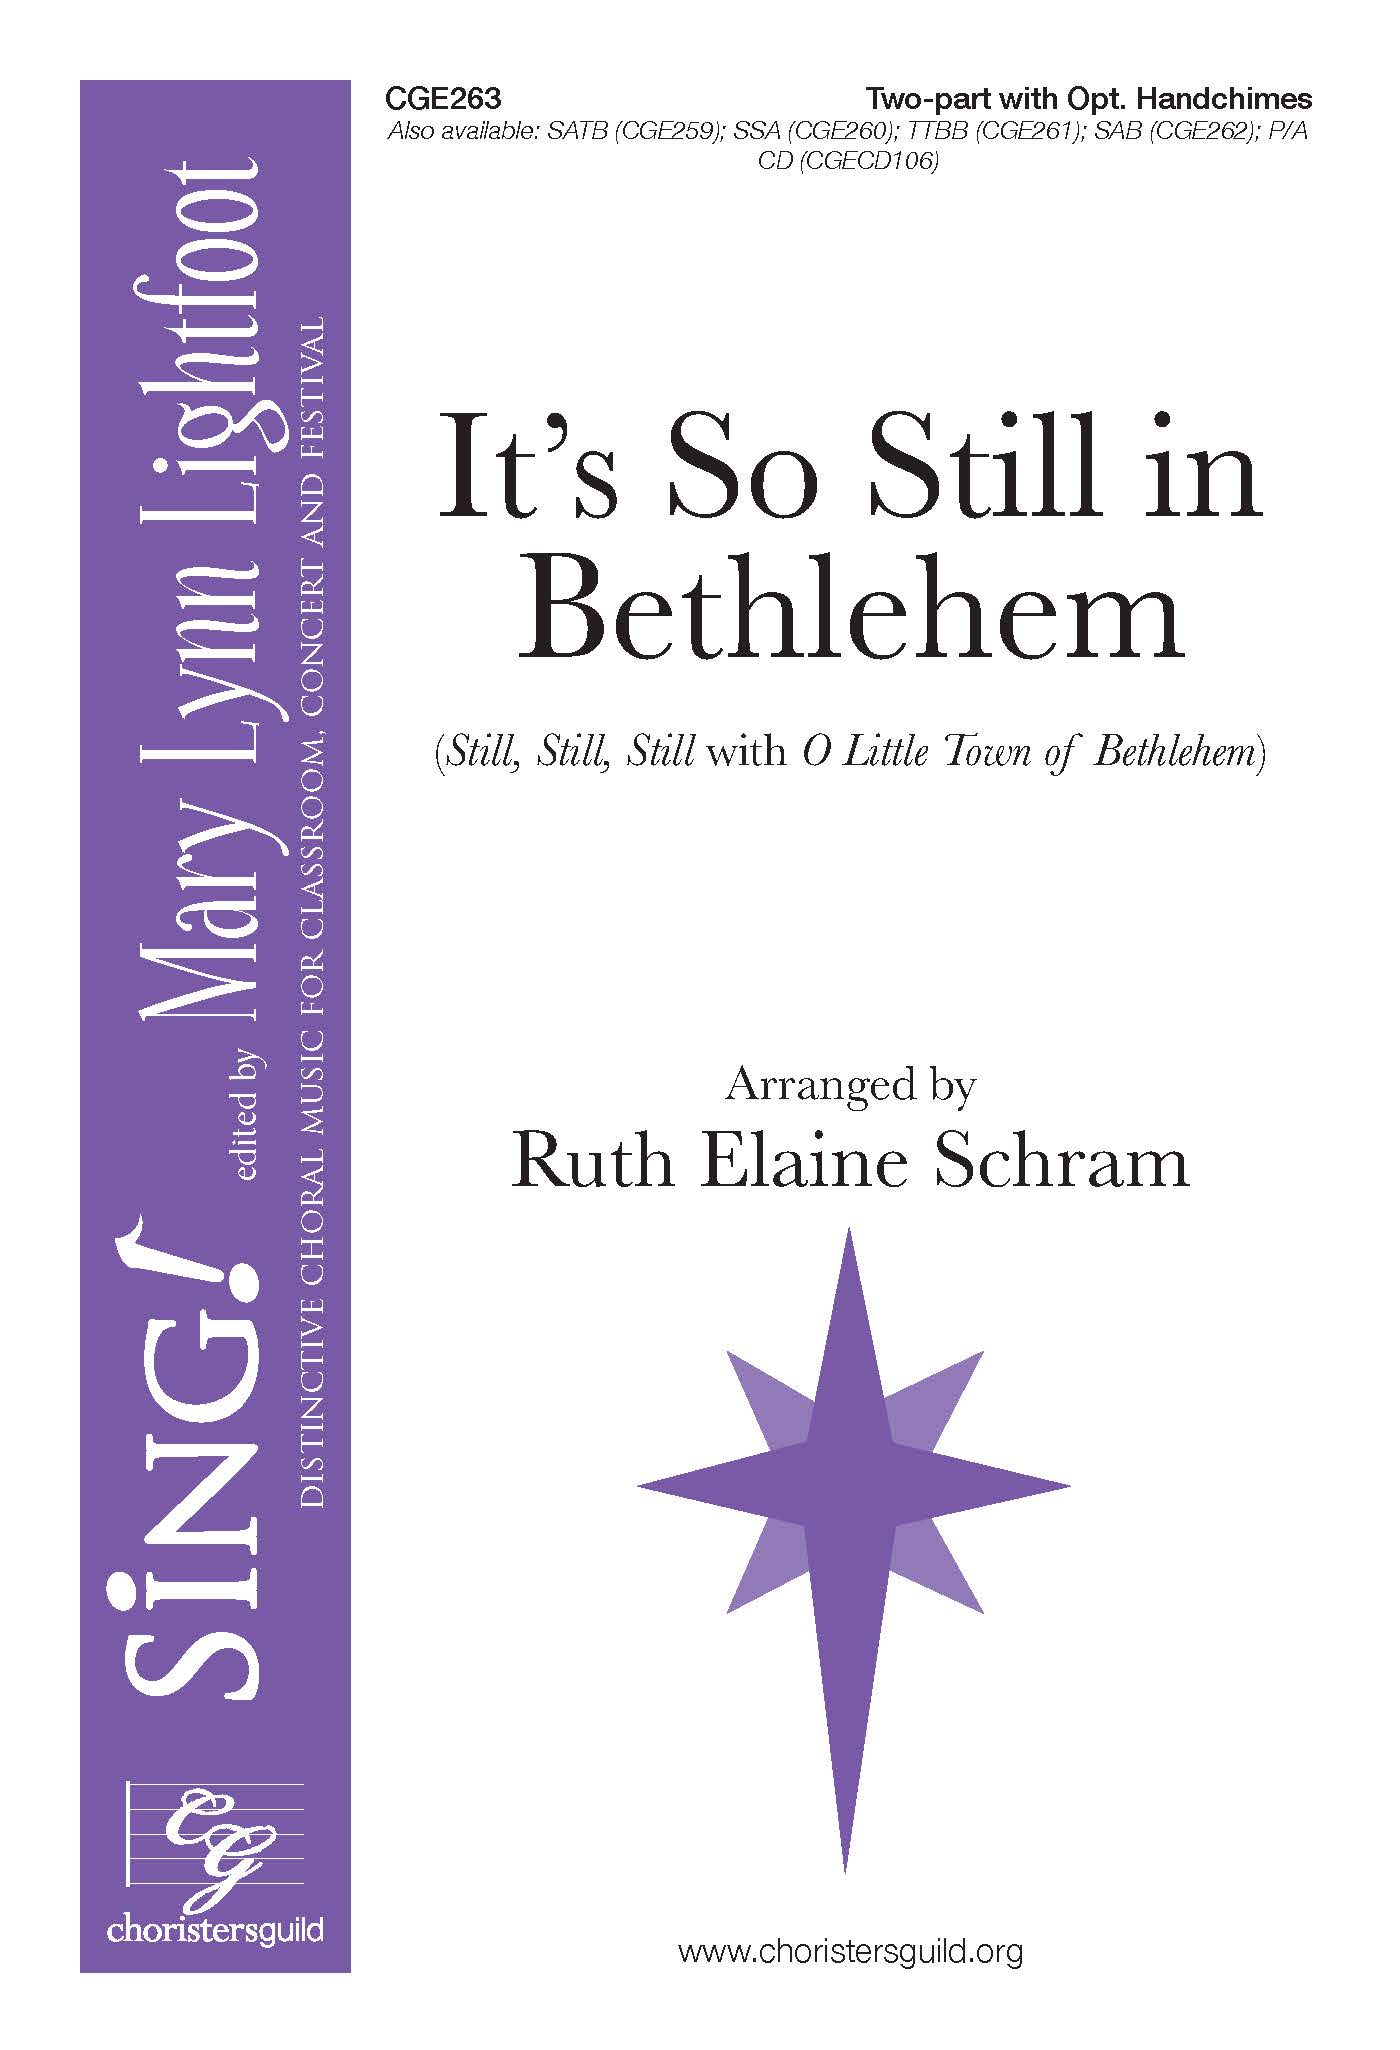 It's So Still in Bethlehem Two-part